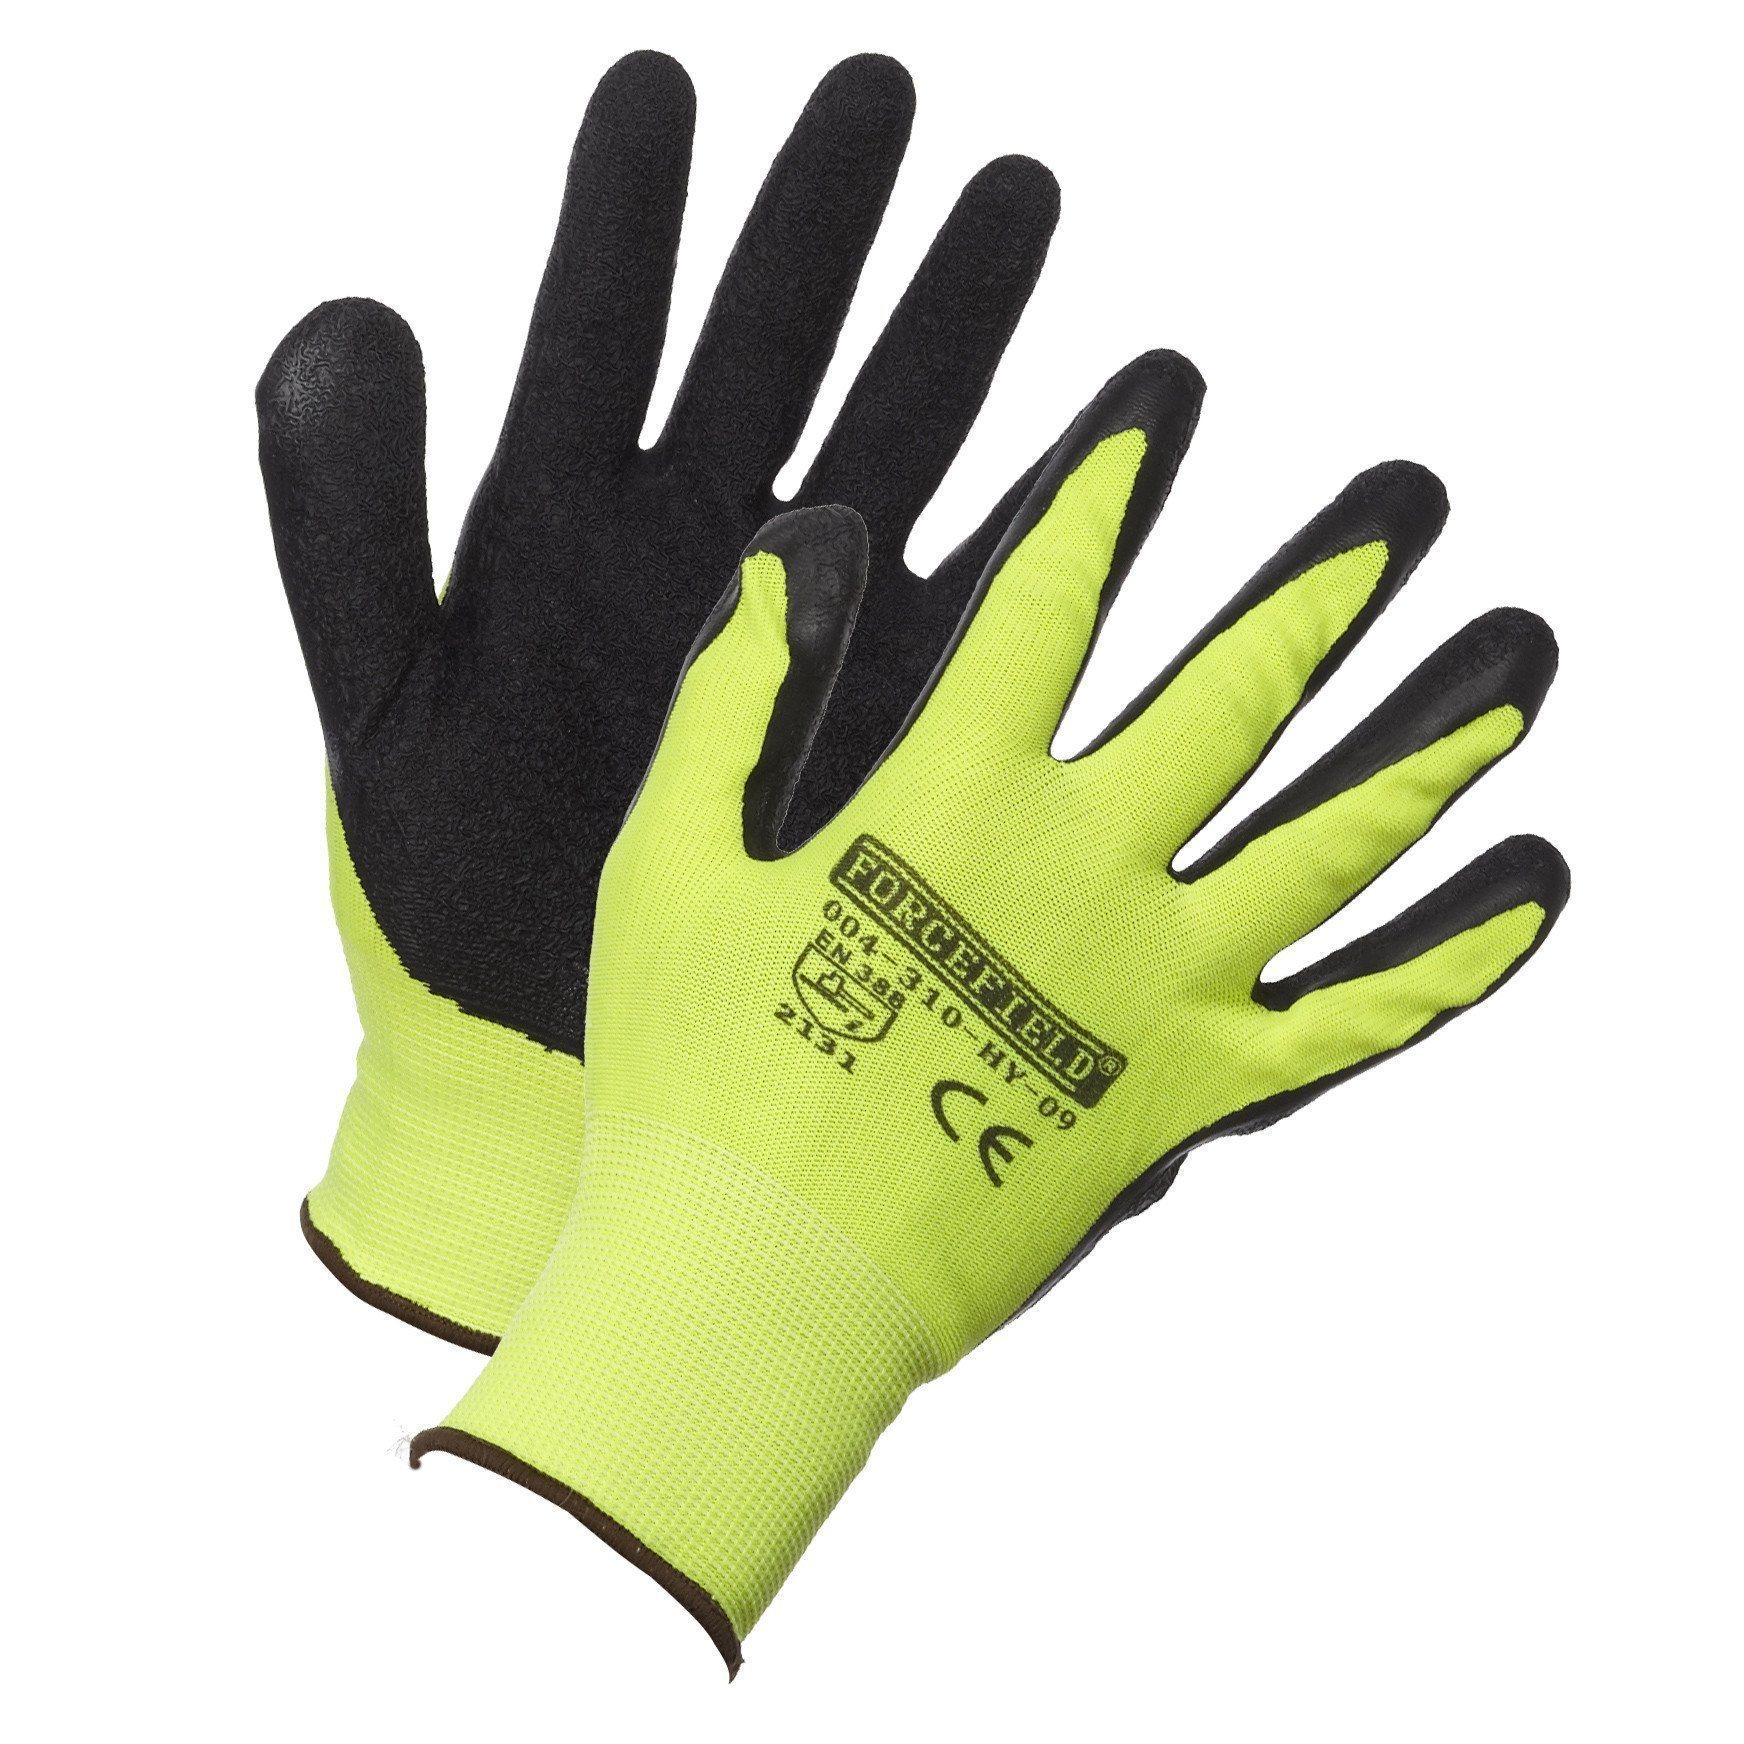 Gloves - Forcefield - High Vis (XL, Size 10), 004-310-HY-10